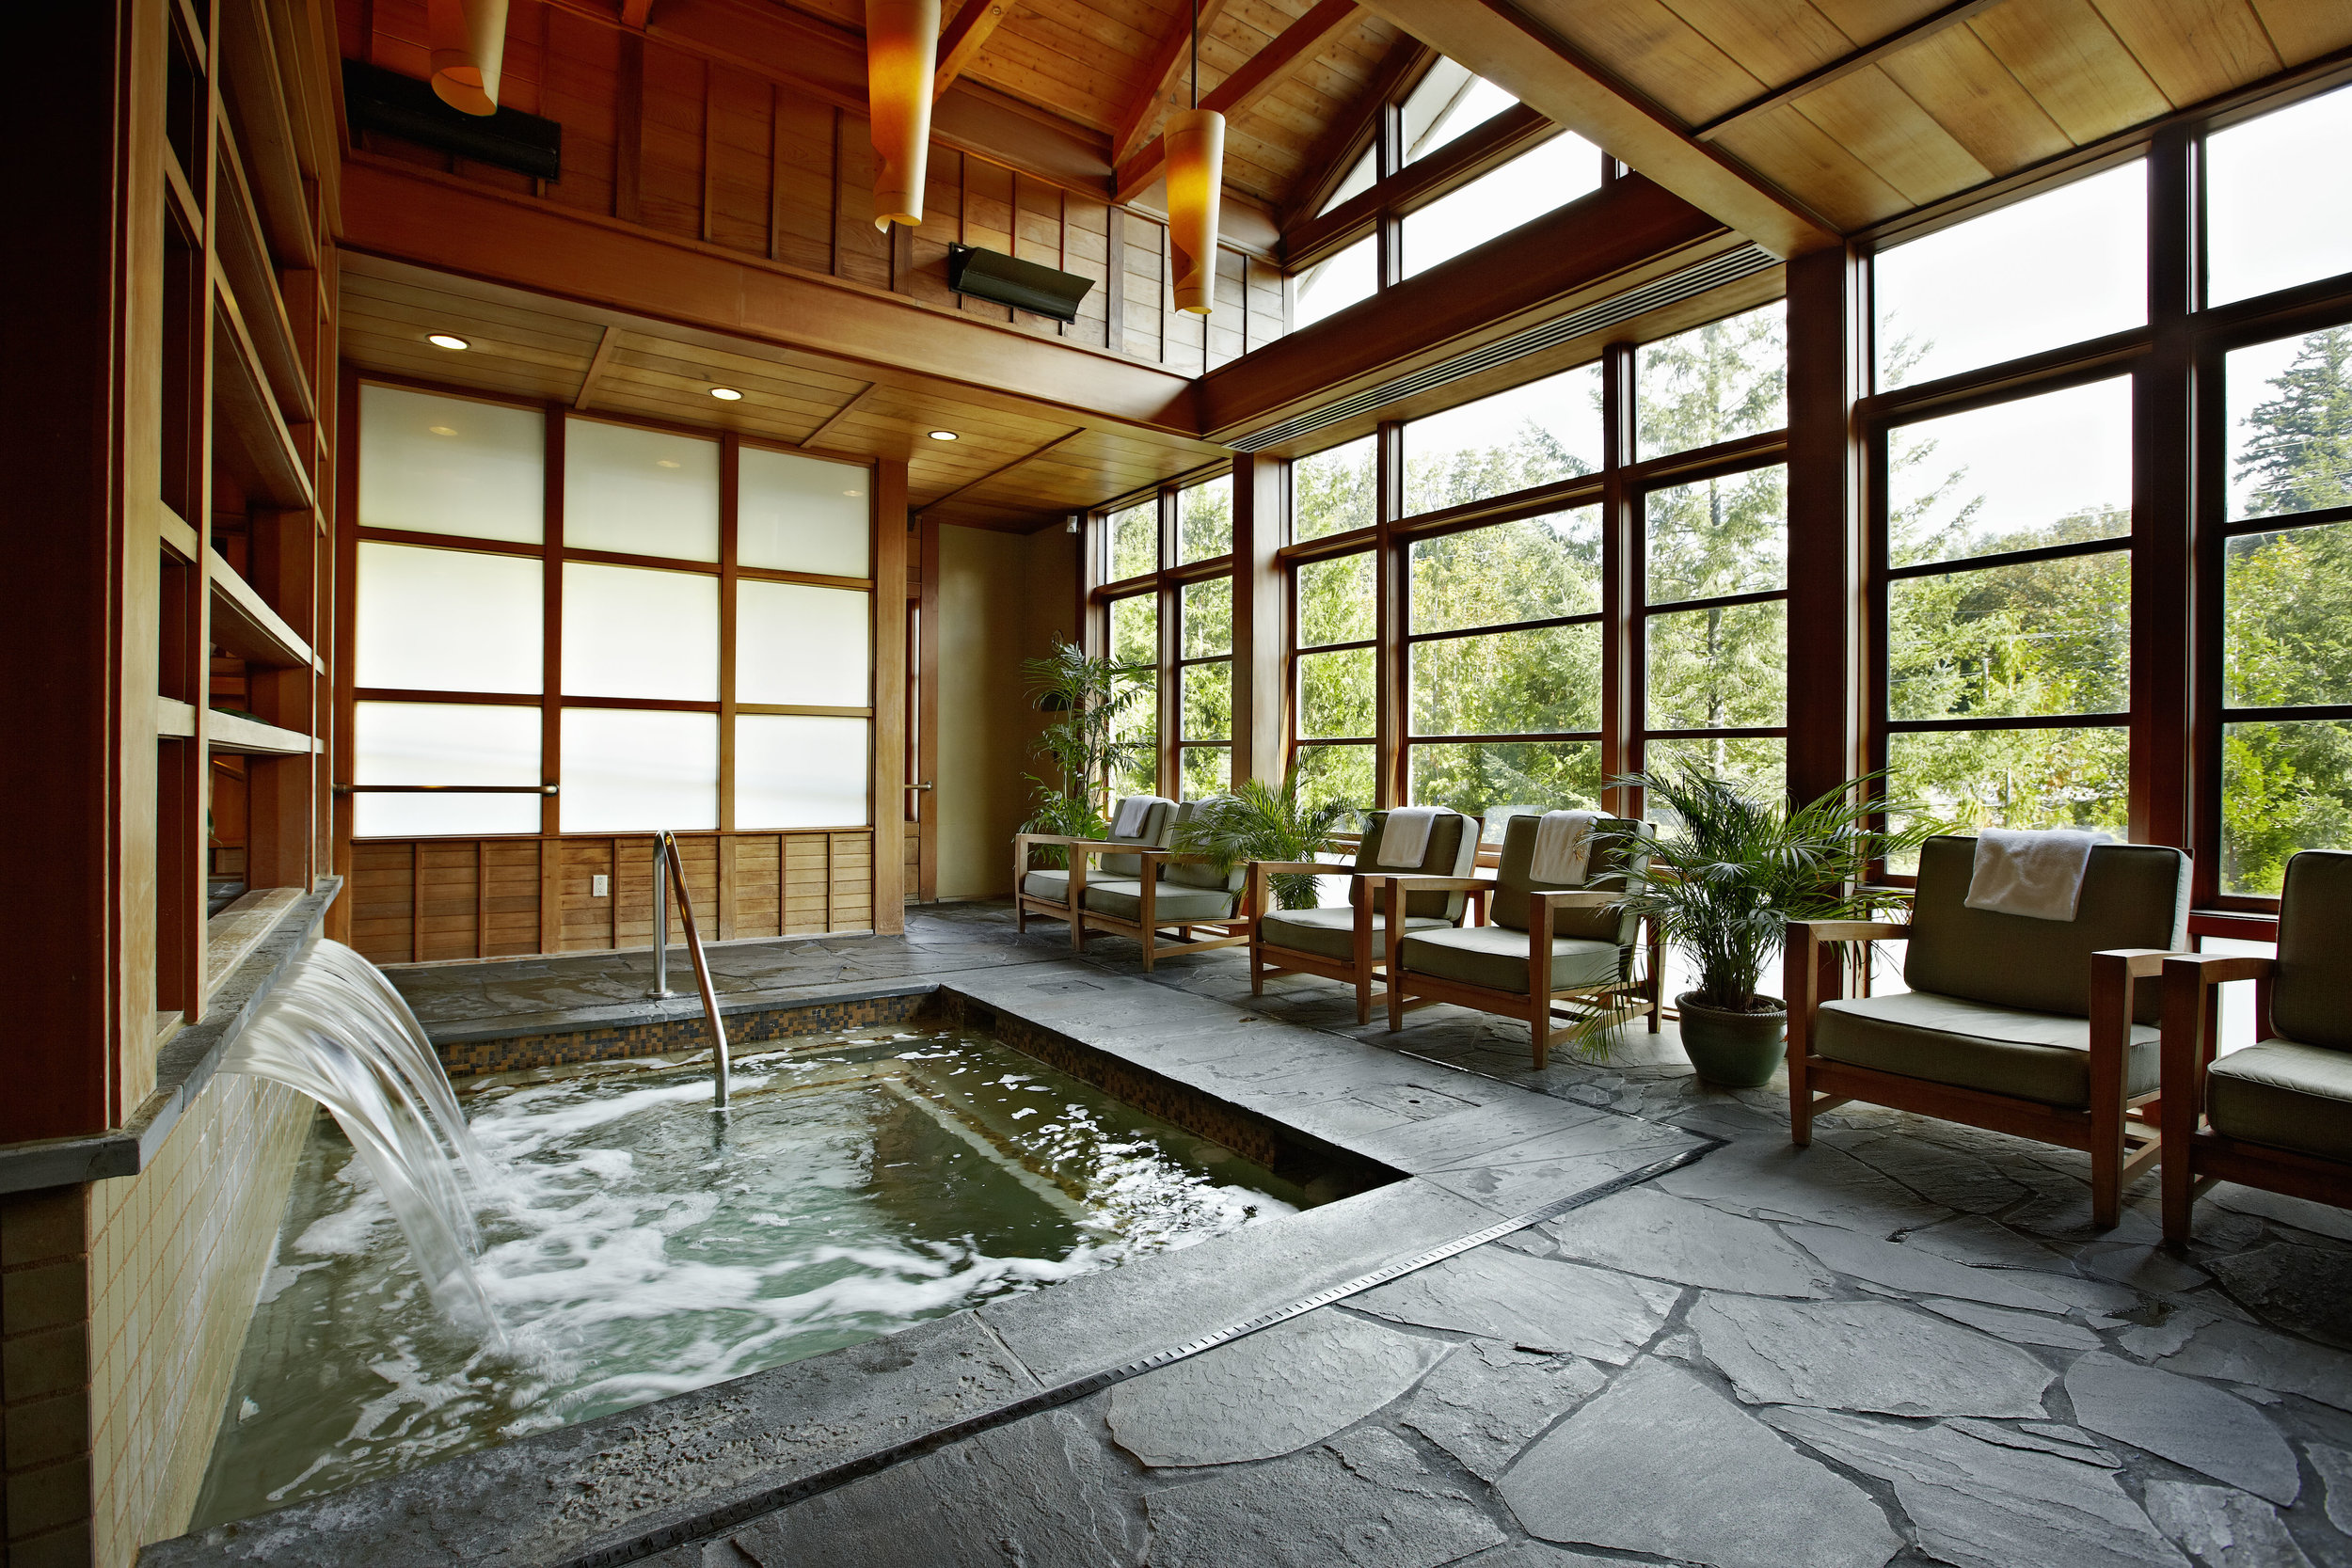 The soaking pools at Salish are calling your nameeee. Photo cred: Salish Lodge and Spa